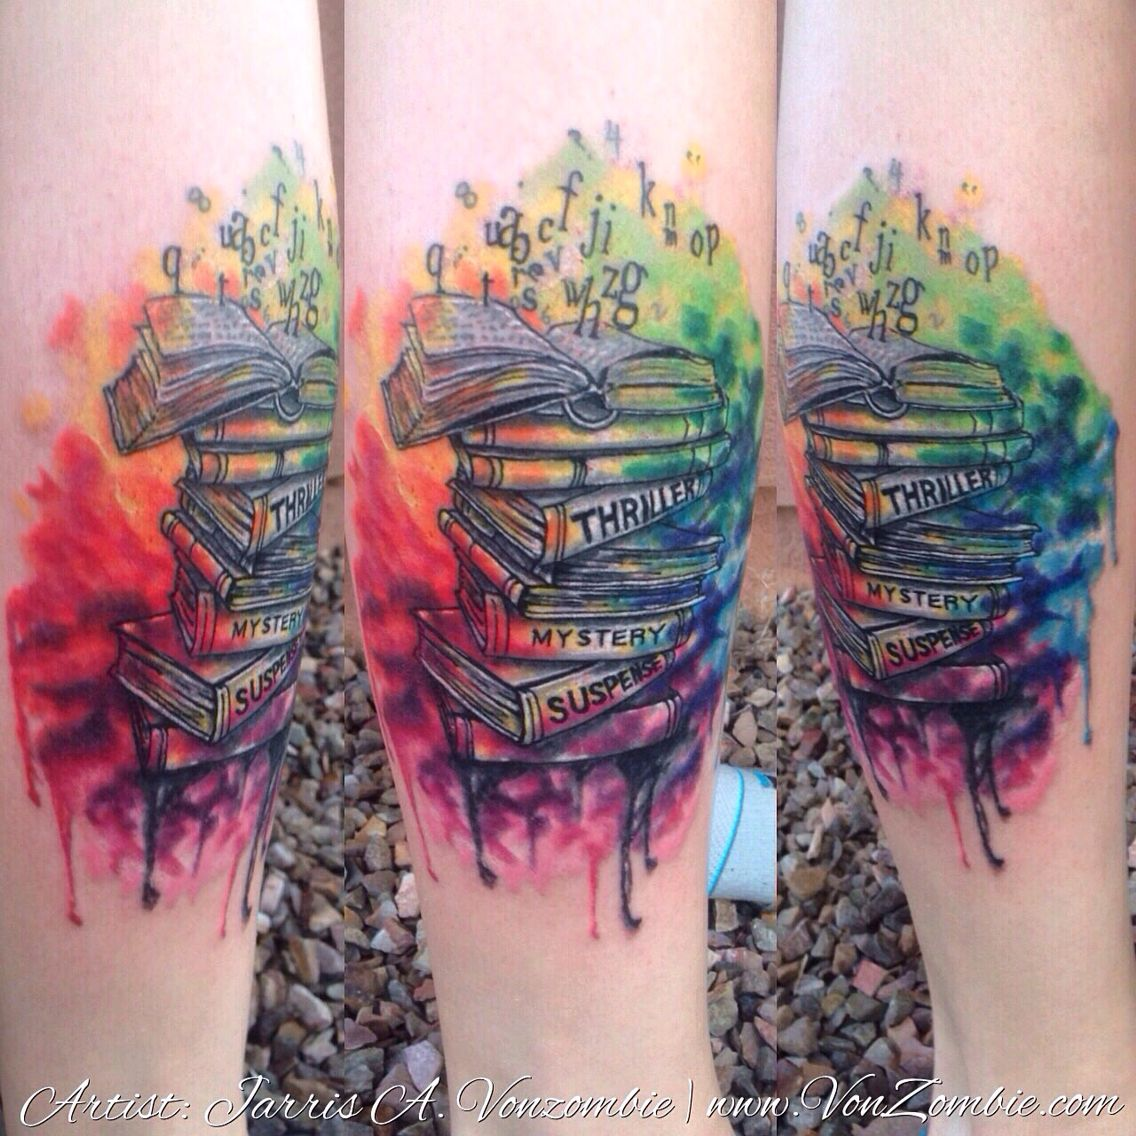 Book Cover Watercolor Tattoos ~ Books of watercolor tattoo created by jarris vonzombie